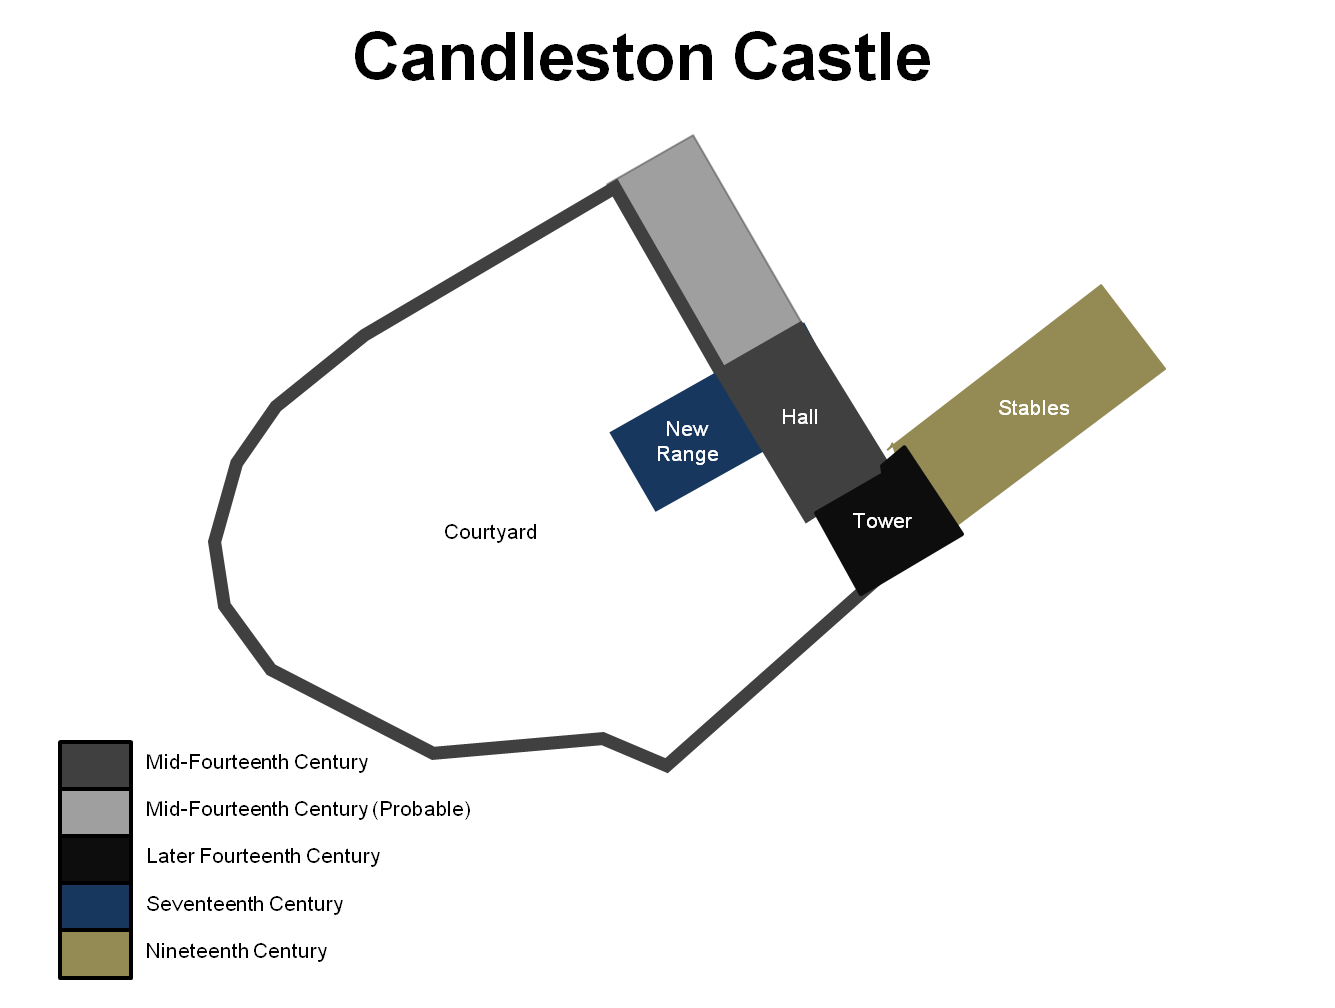 candleston castle south wales castles forts and battles candleston castle layout the castle consisted of a d shaped courtyard enclosed by a curtain wall with a two storey hall range on the eastern side